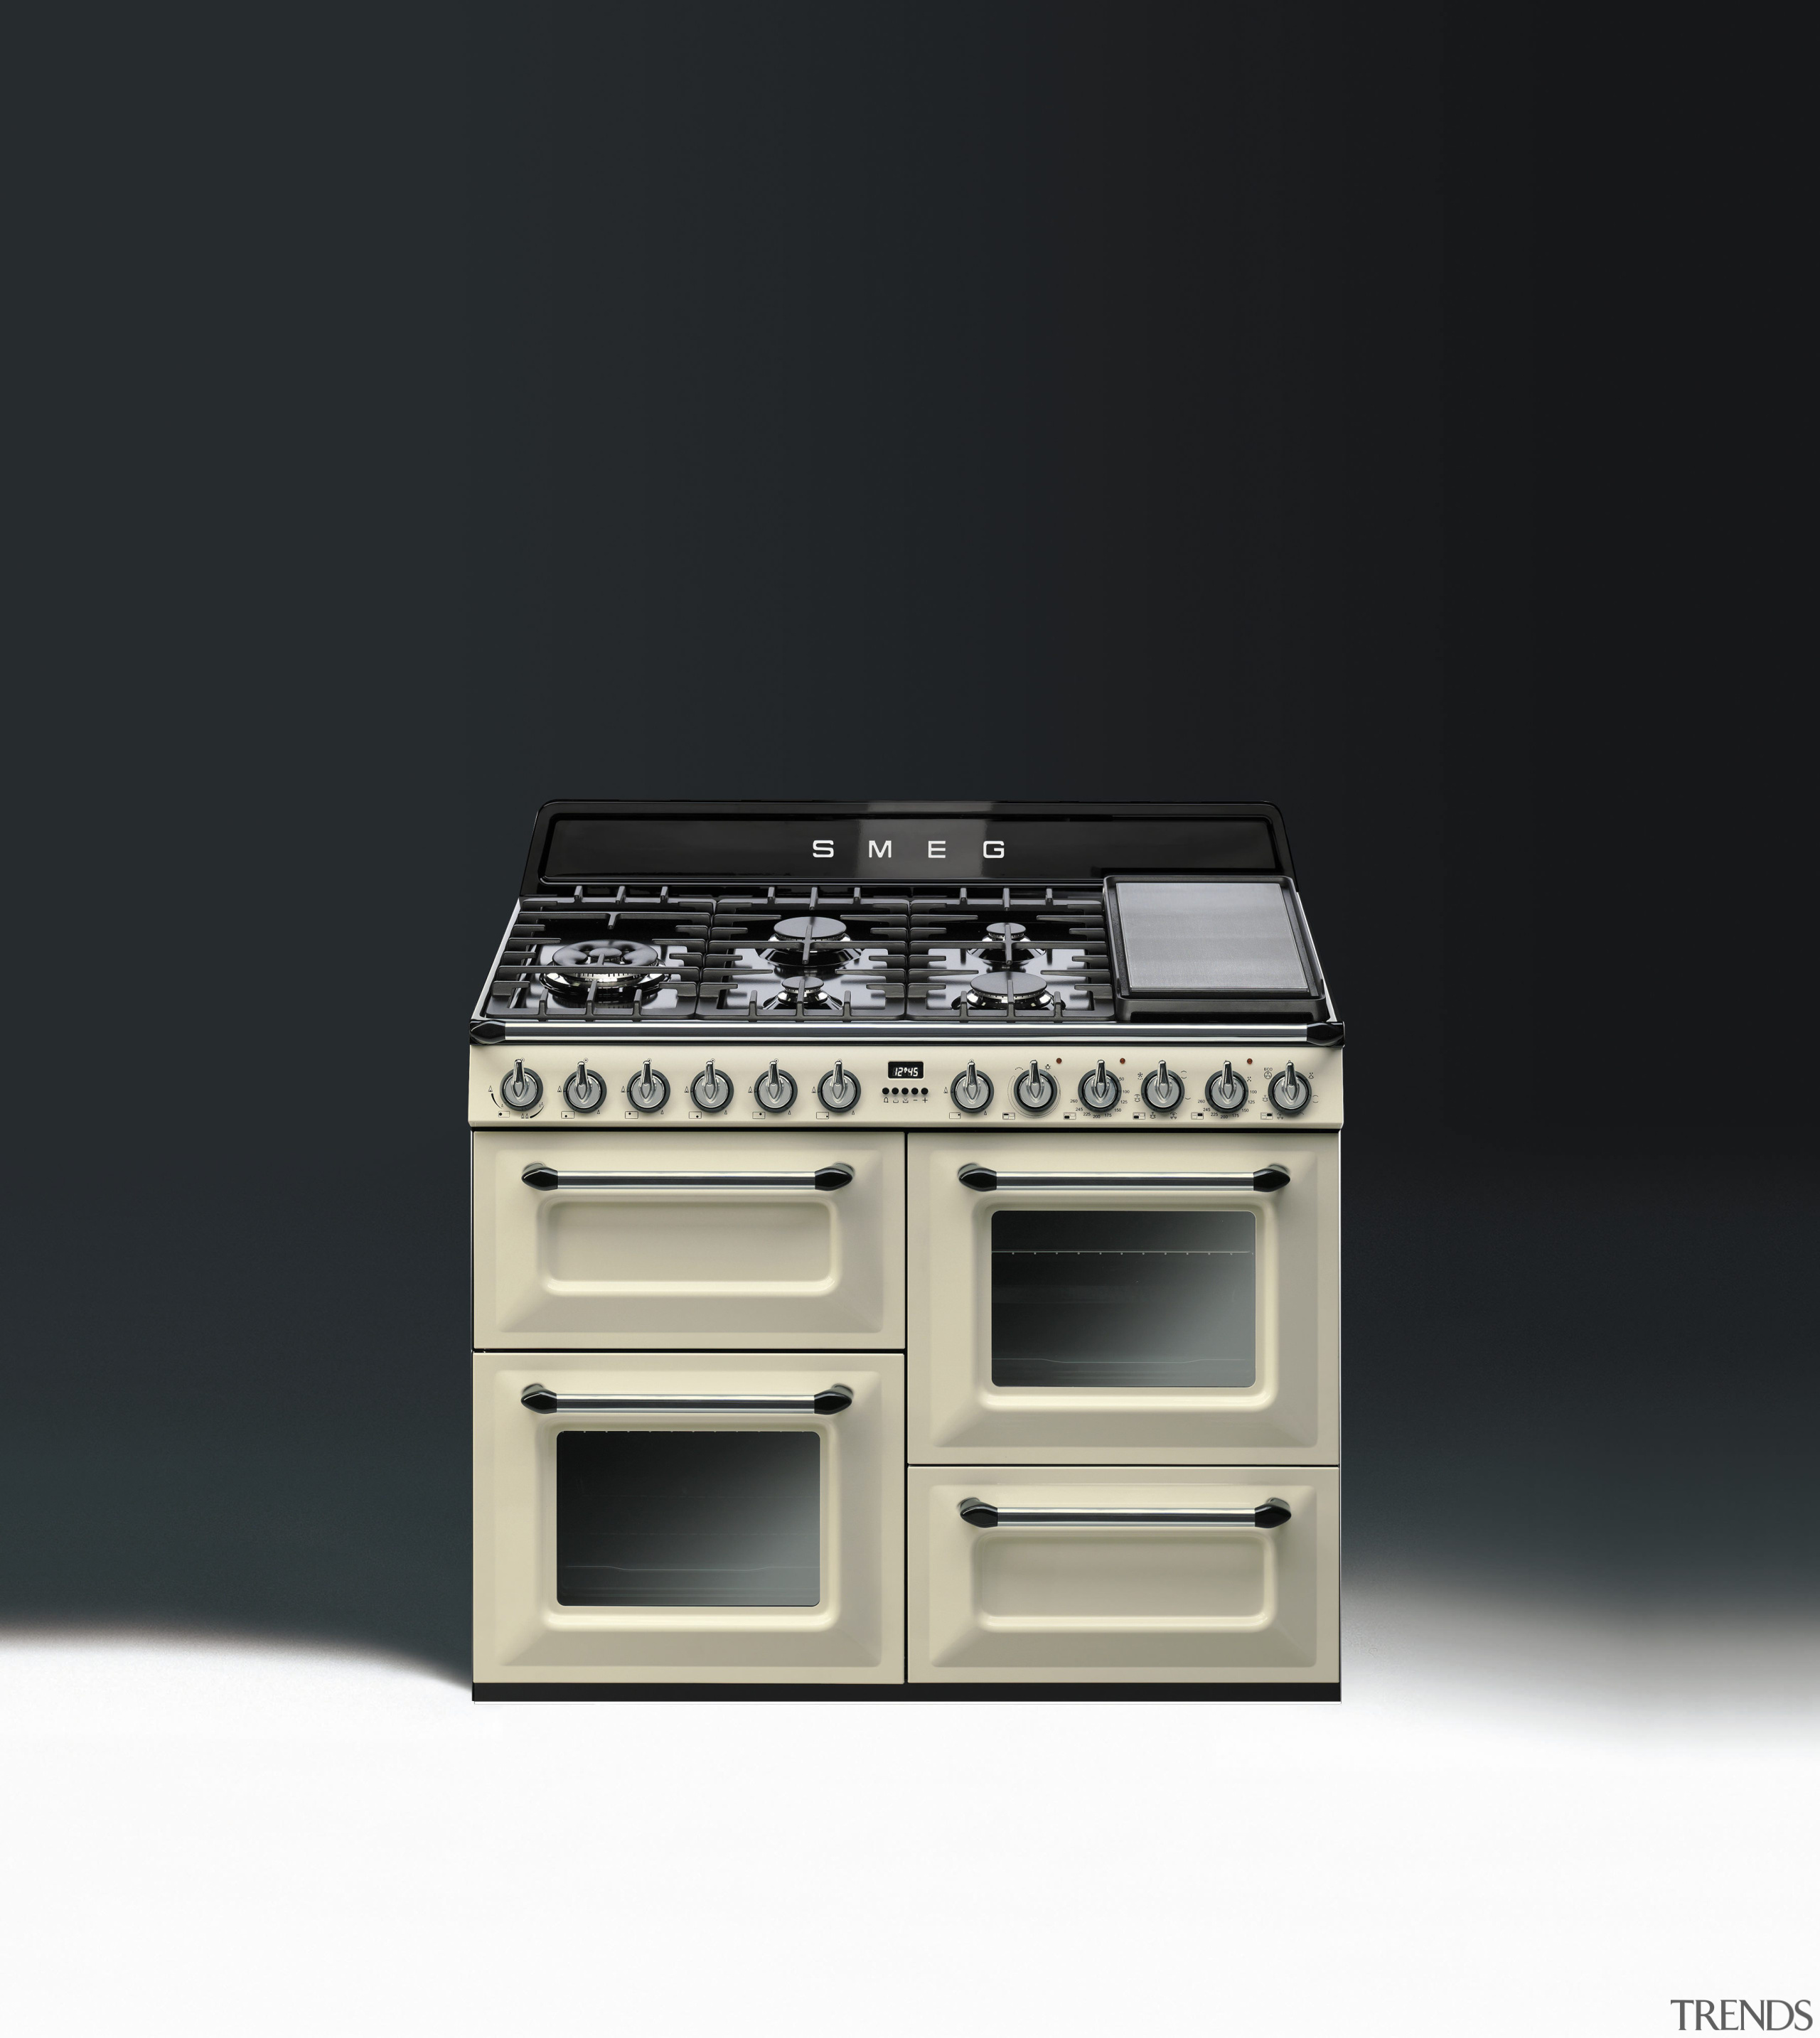 Freestanding cookers from Smeg highlight a significant design electronics, gas stove, home appliance, kitchen appliance, kitchen stove, major appliance, product, product design, black